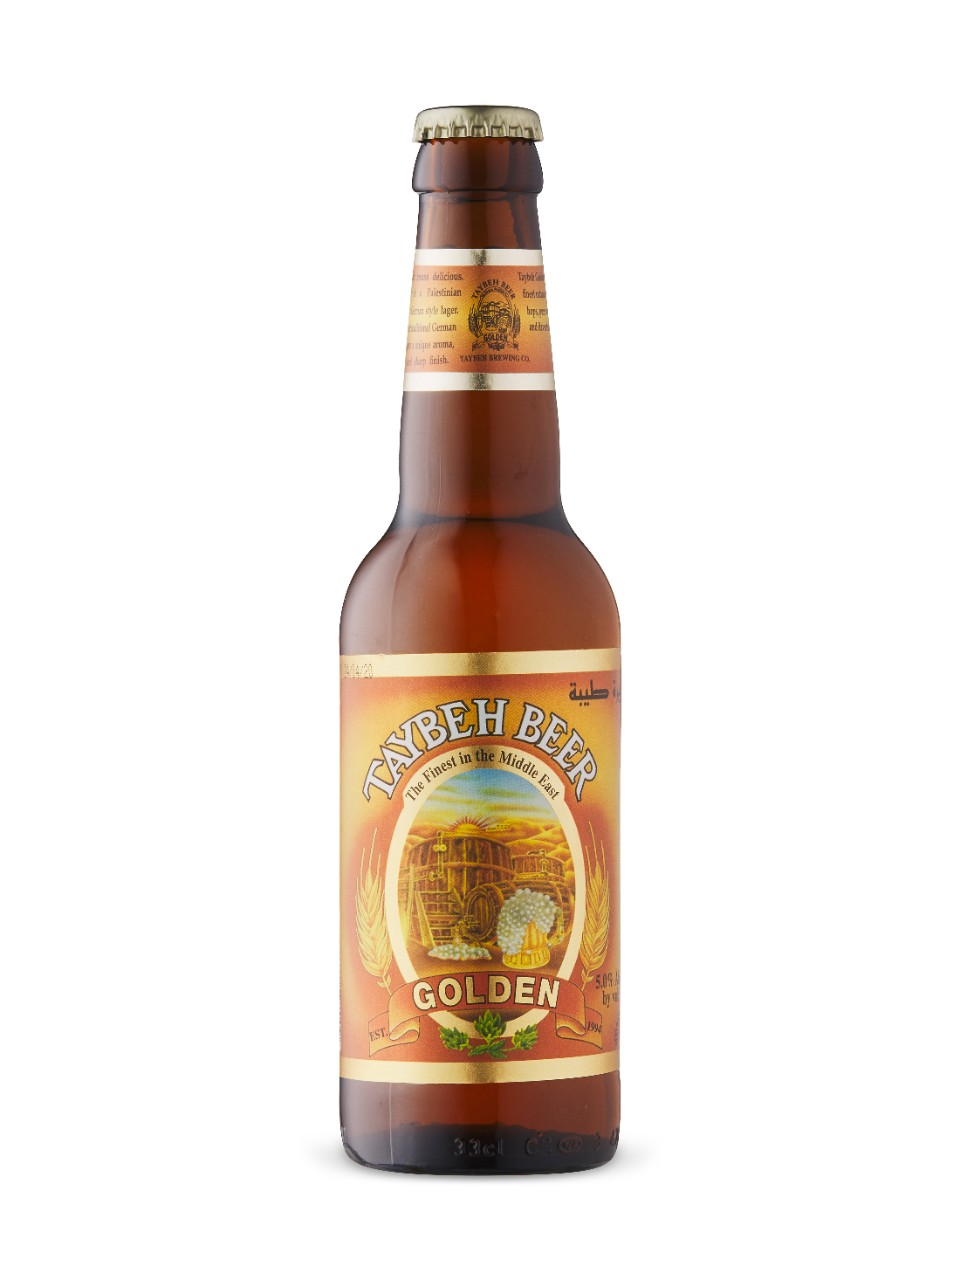 Golden Taybeh Beer from LCBO